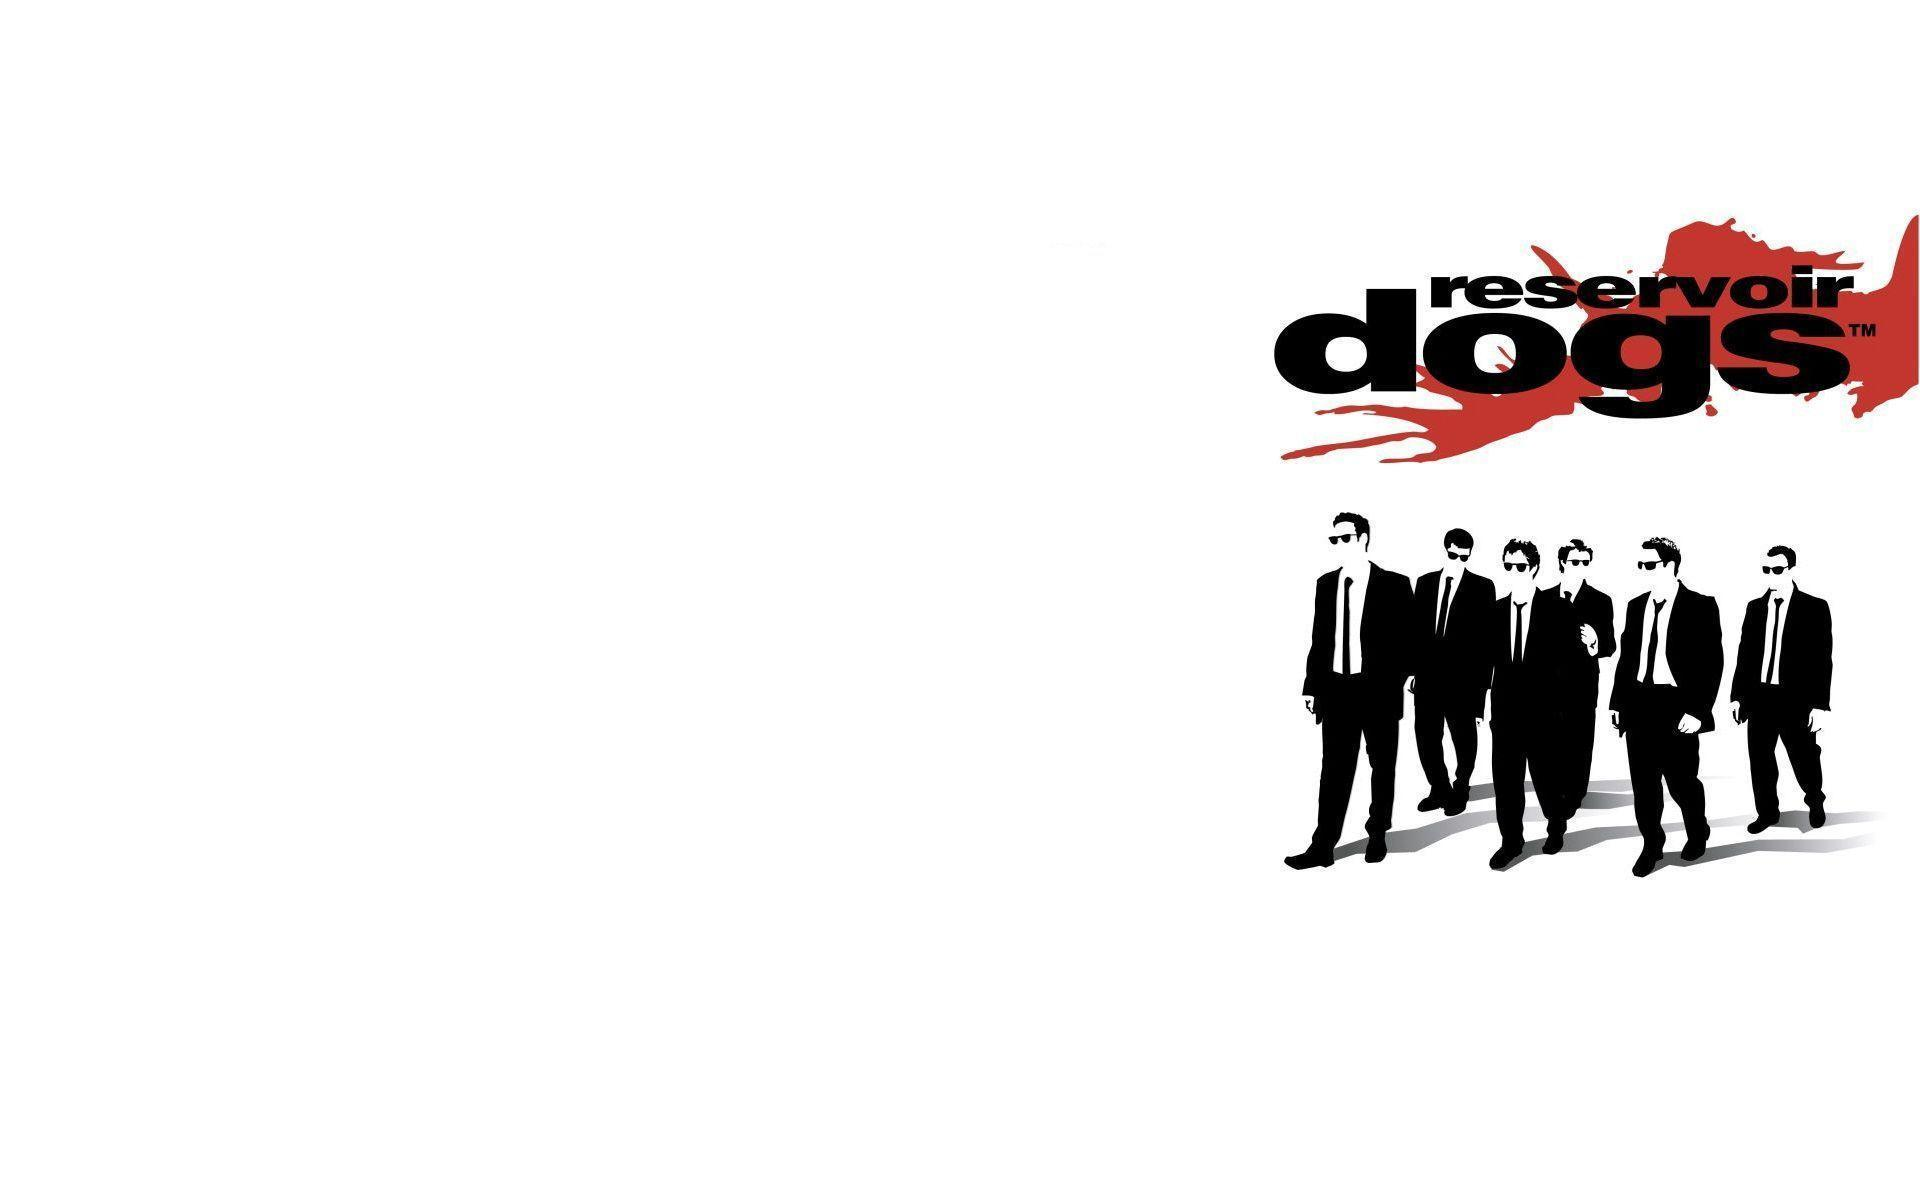 Images For gt; Reservoir Dogs Wallpaper